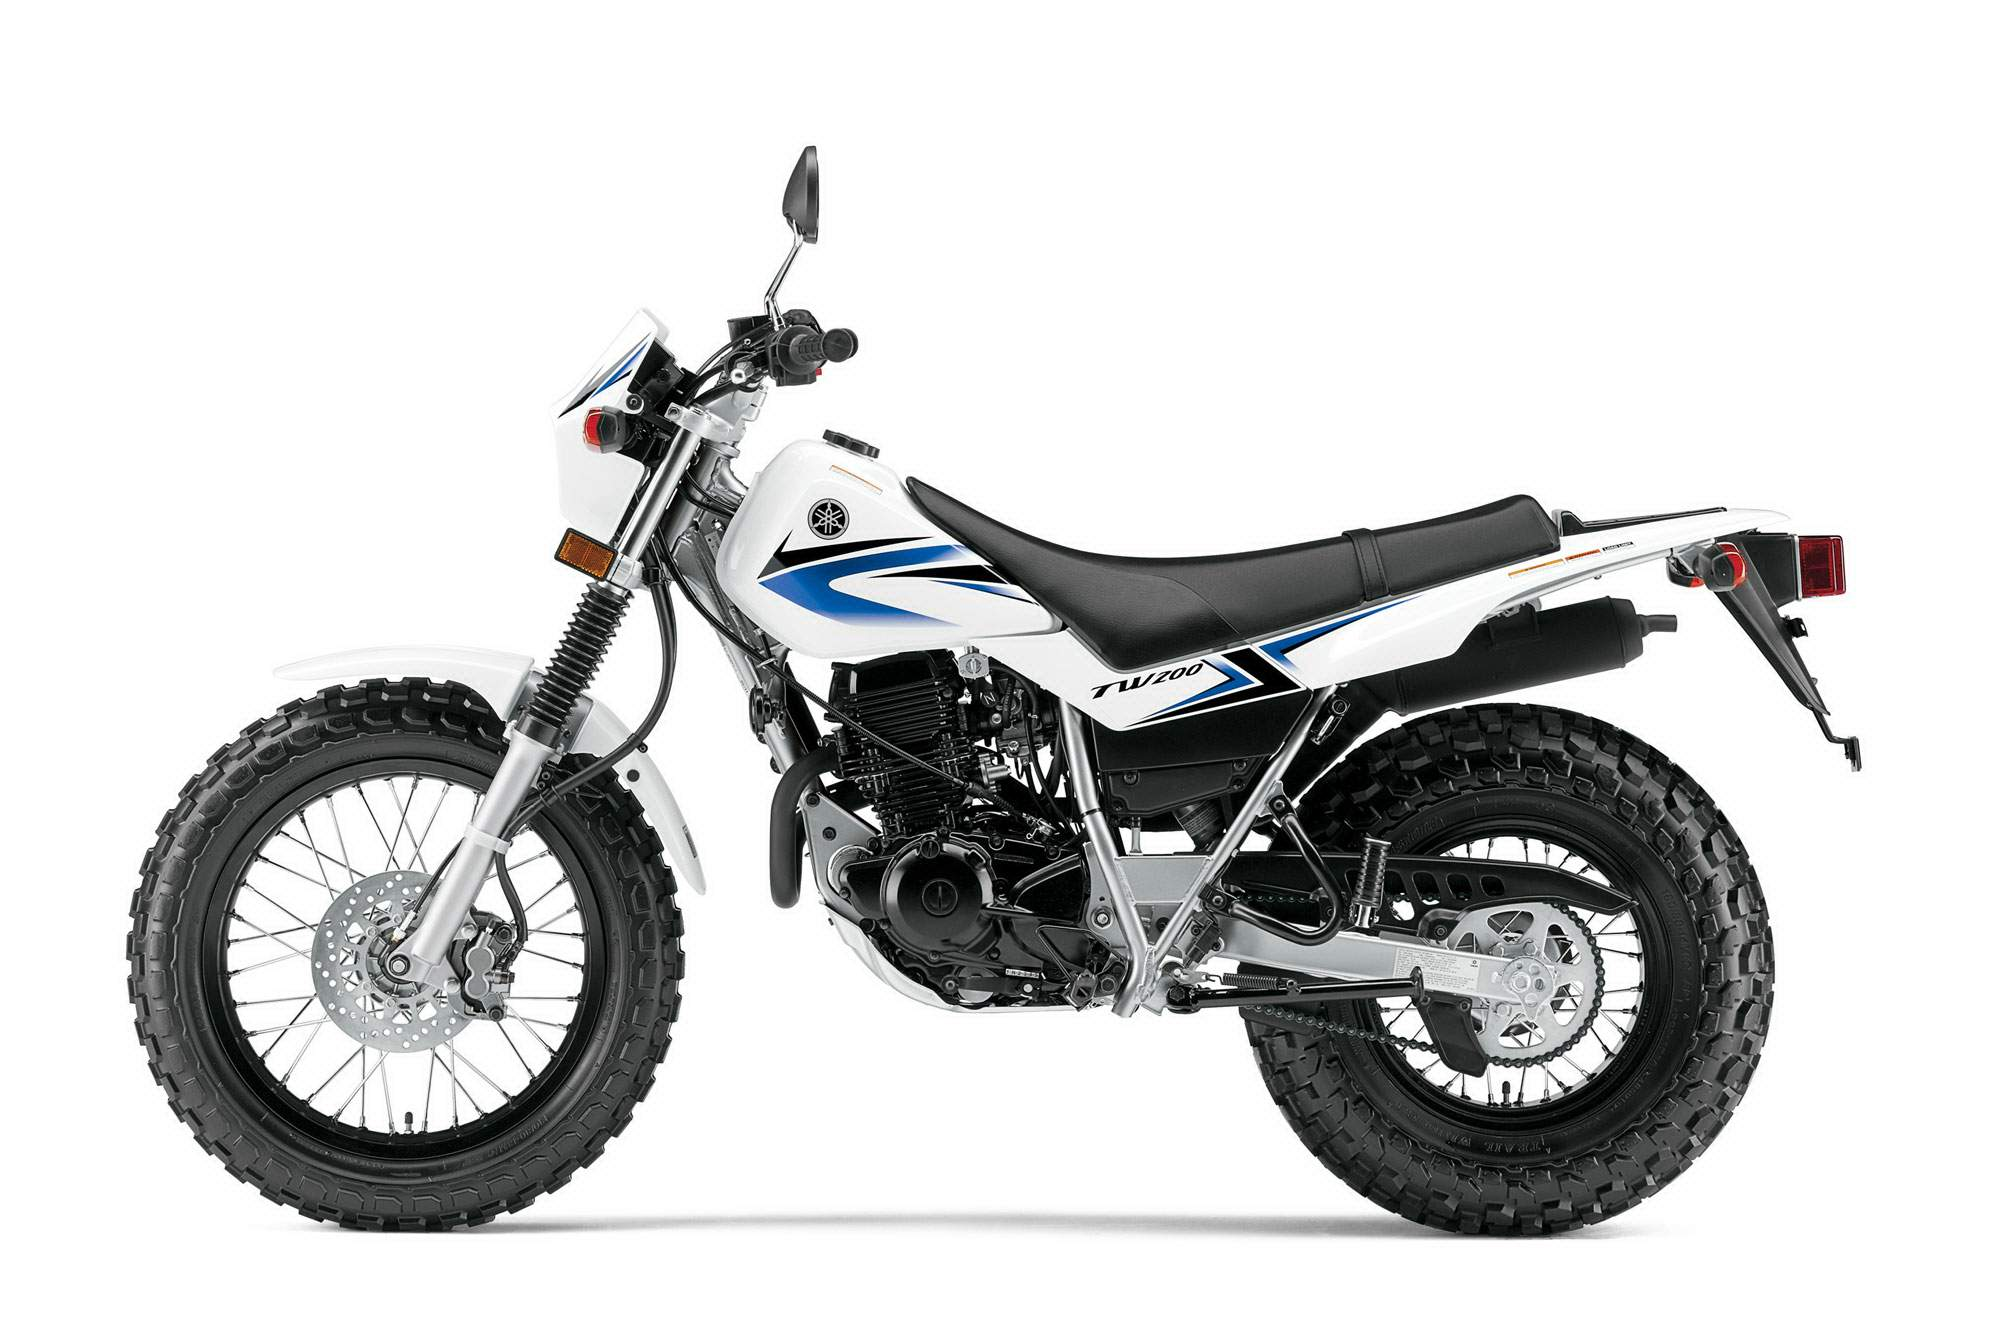 Yamaha Tw 200 Pics Specs And Information